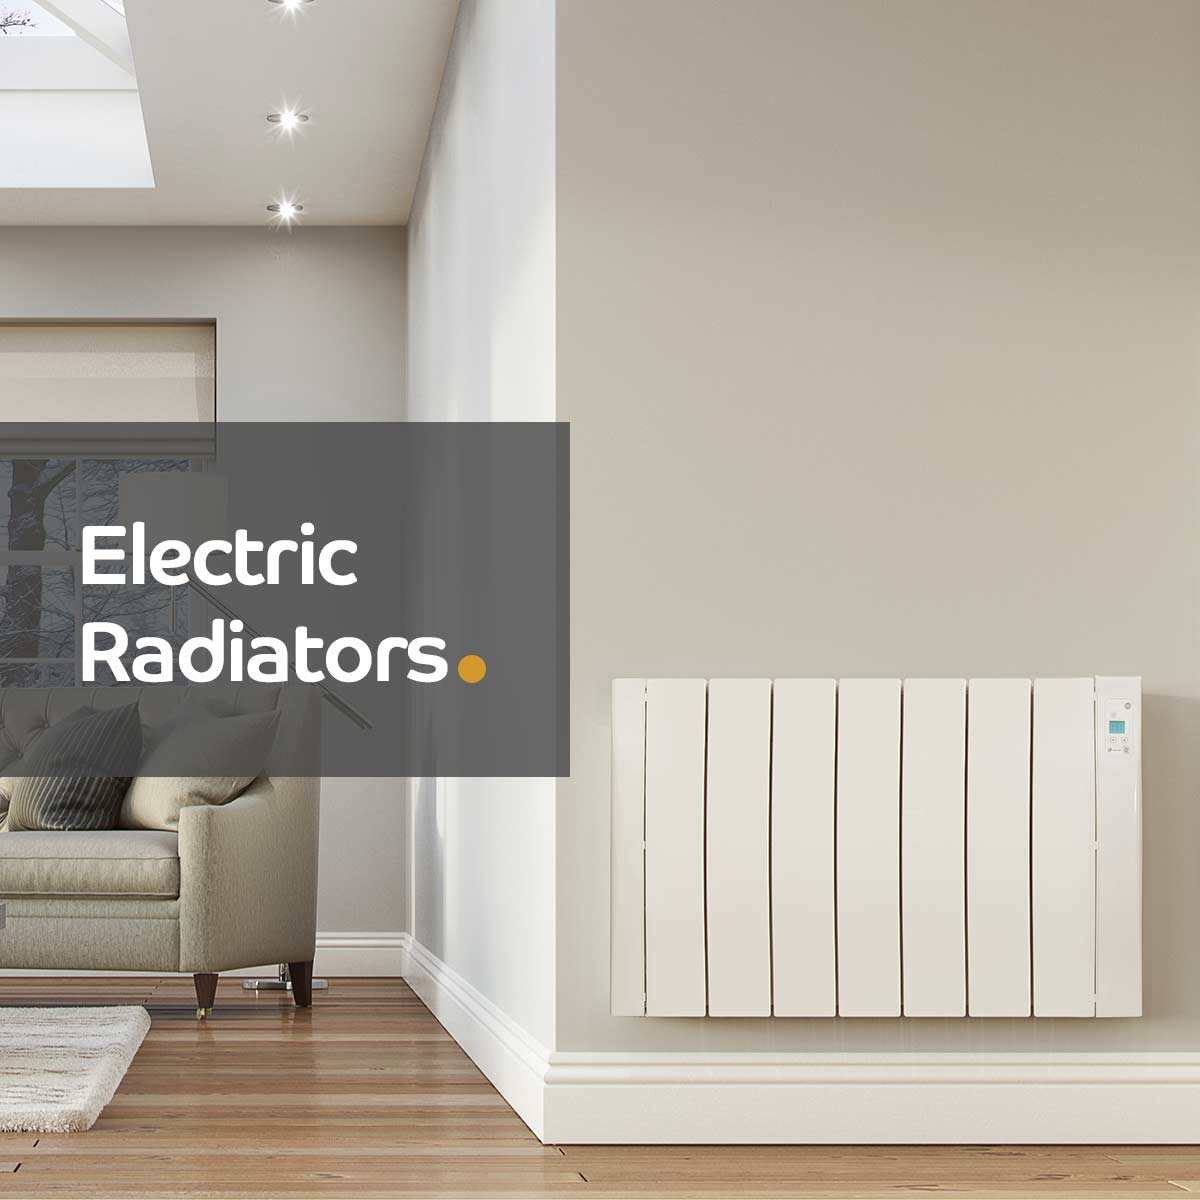 Wattage Radiator Electric Radiators Buying Guide Expert Advice Heatingpoint